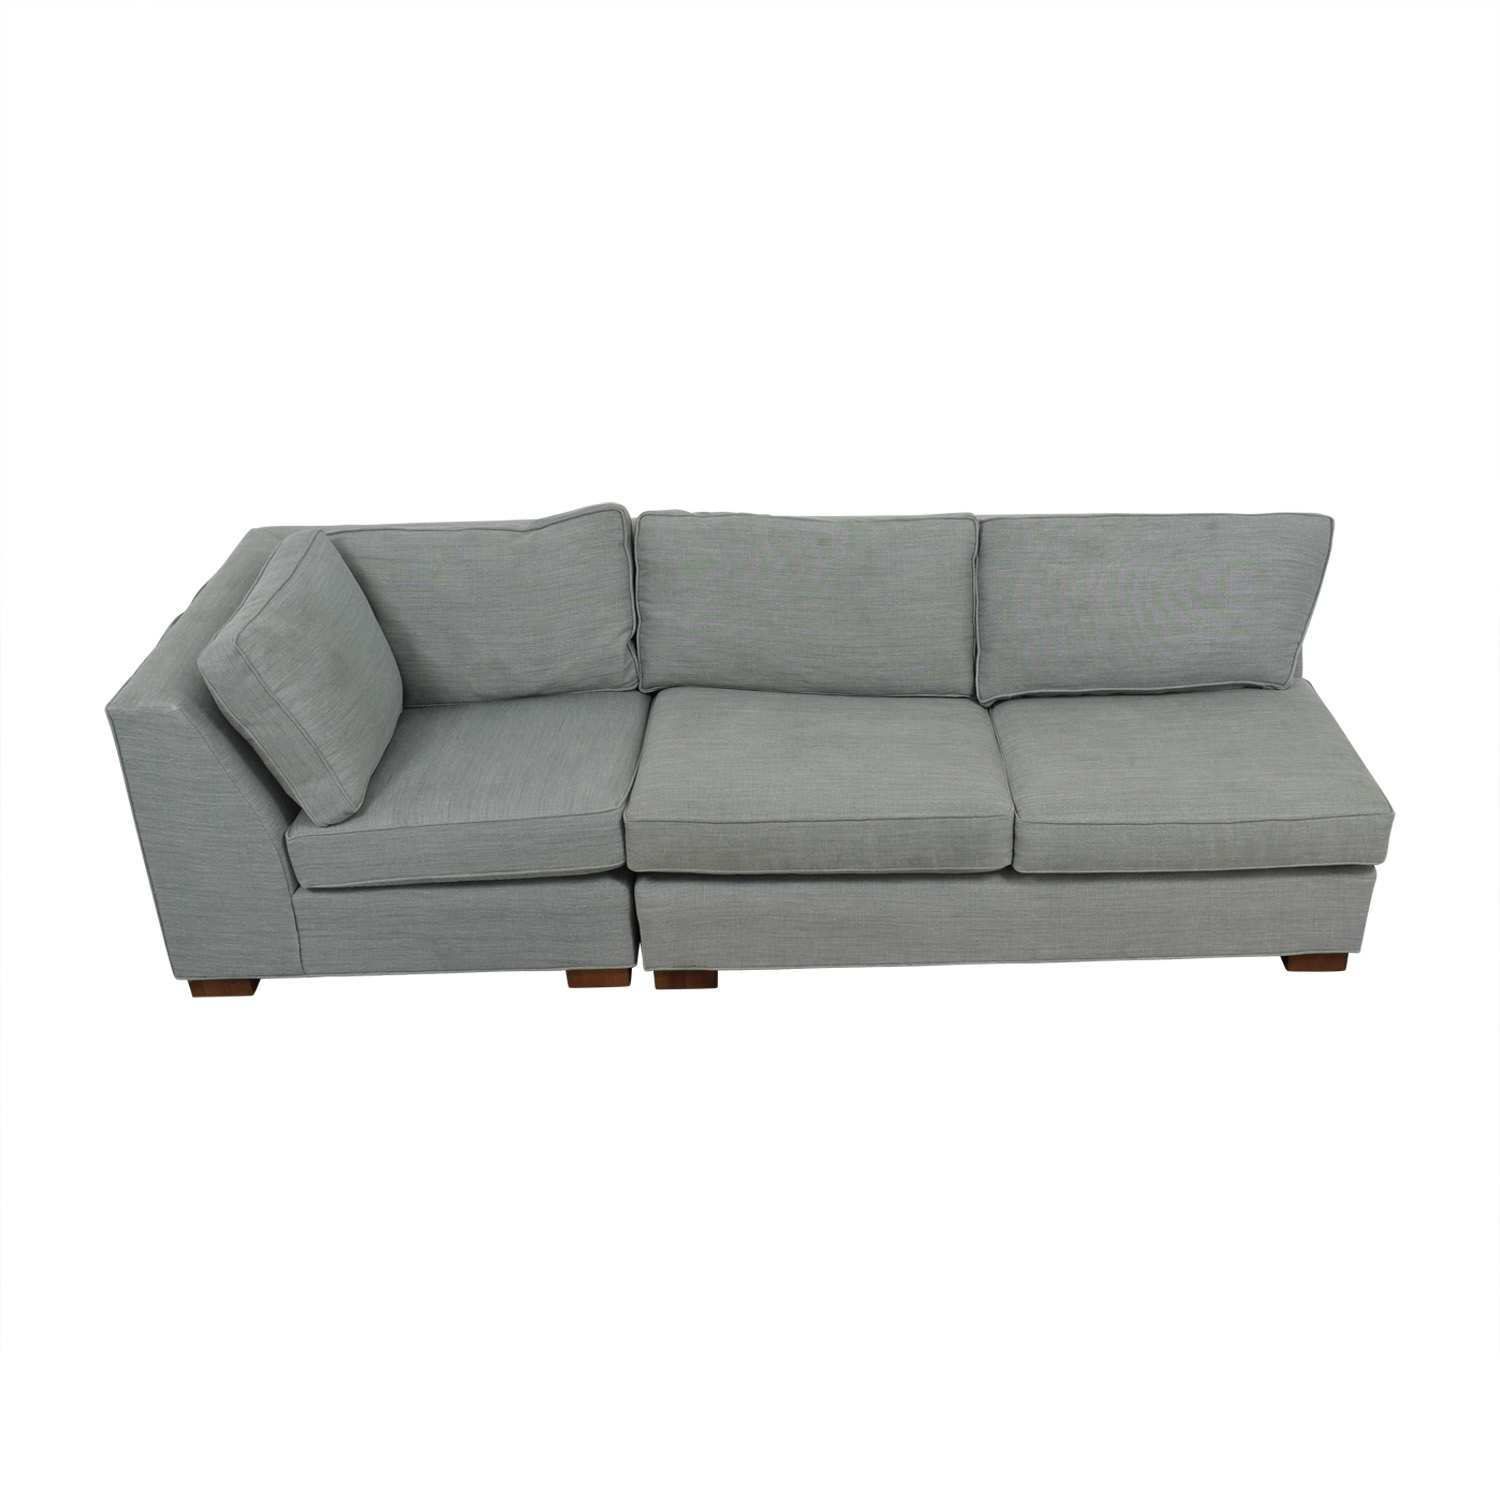 Mitchell Gold + Bob Williams Mitchell Gold + Bob Williams Gray Three-Cushion One Armed Sofa on sale